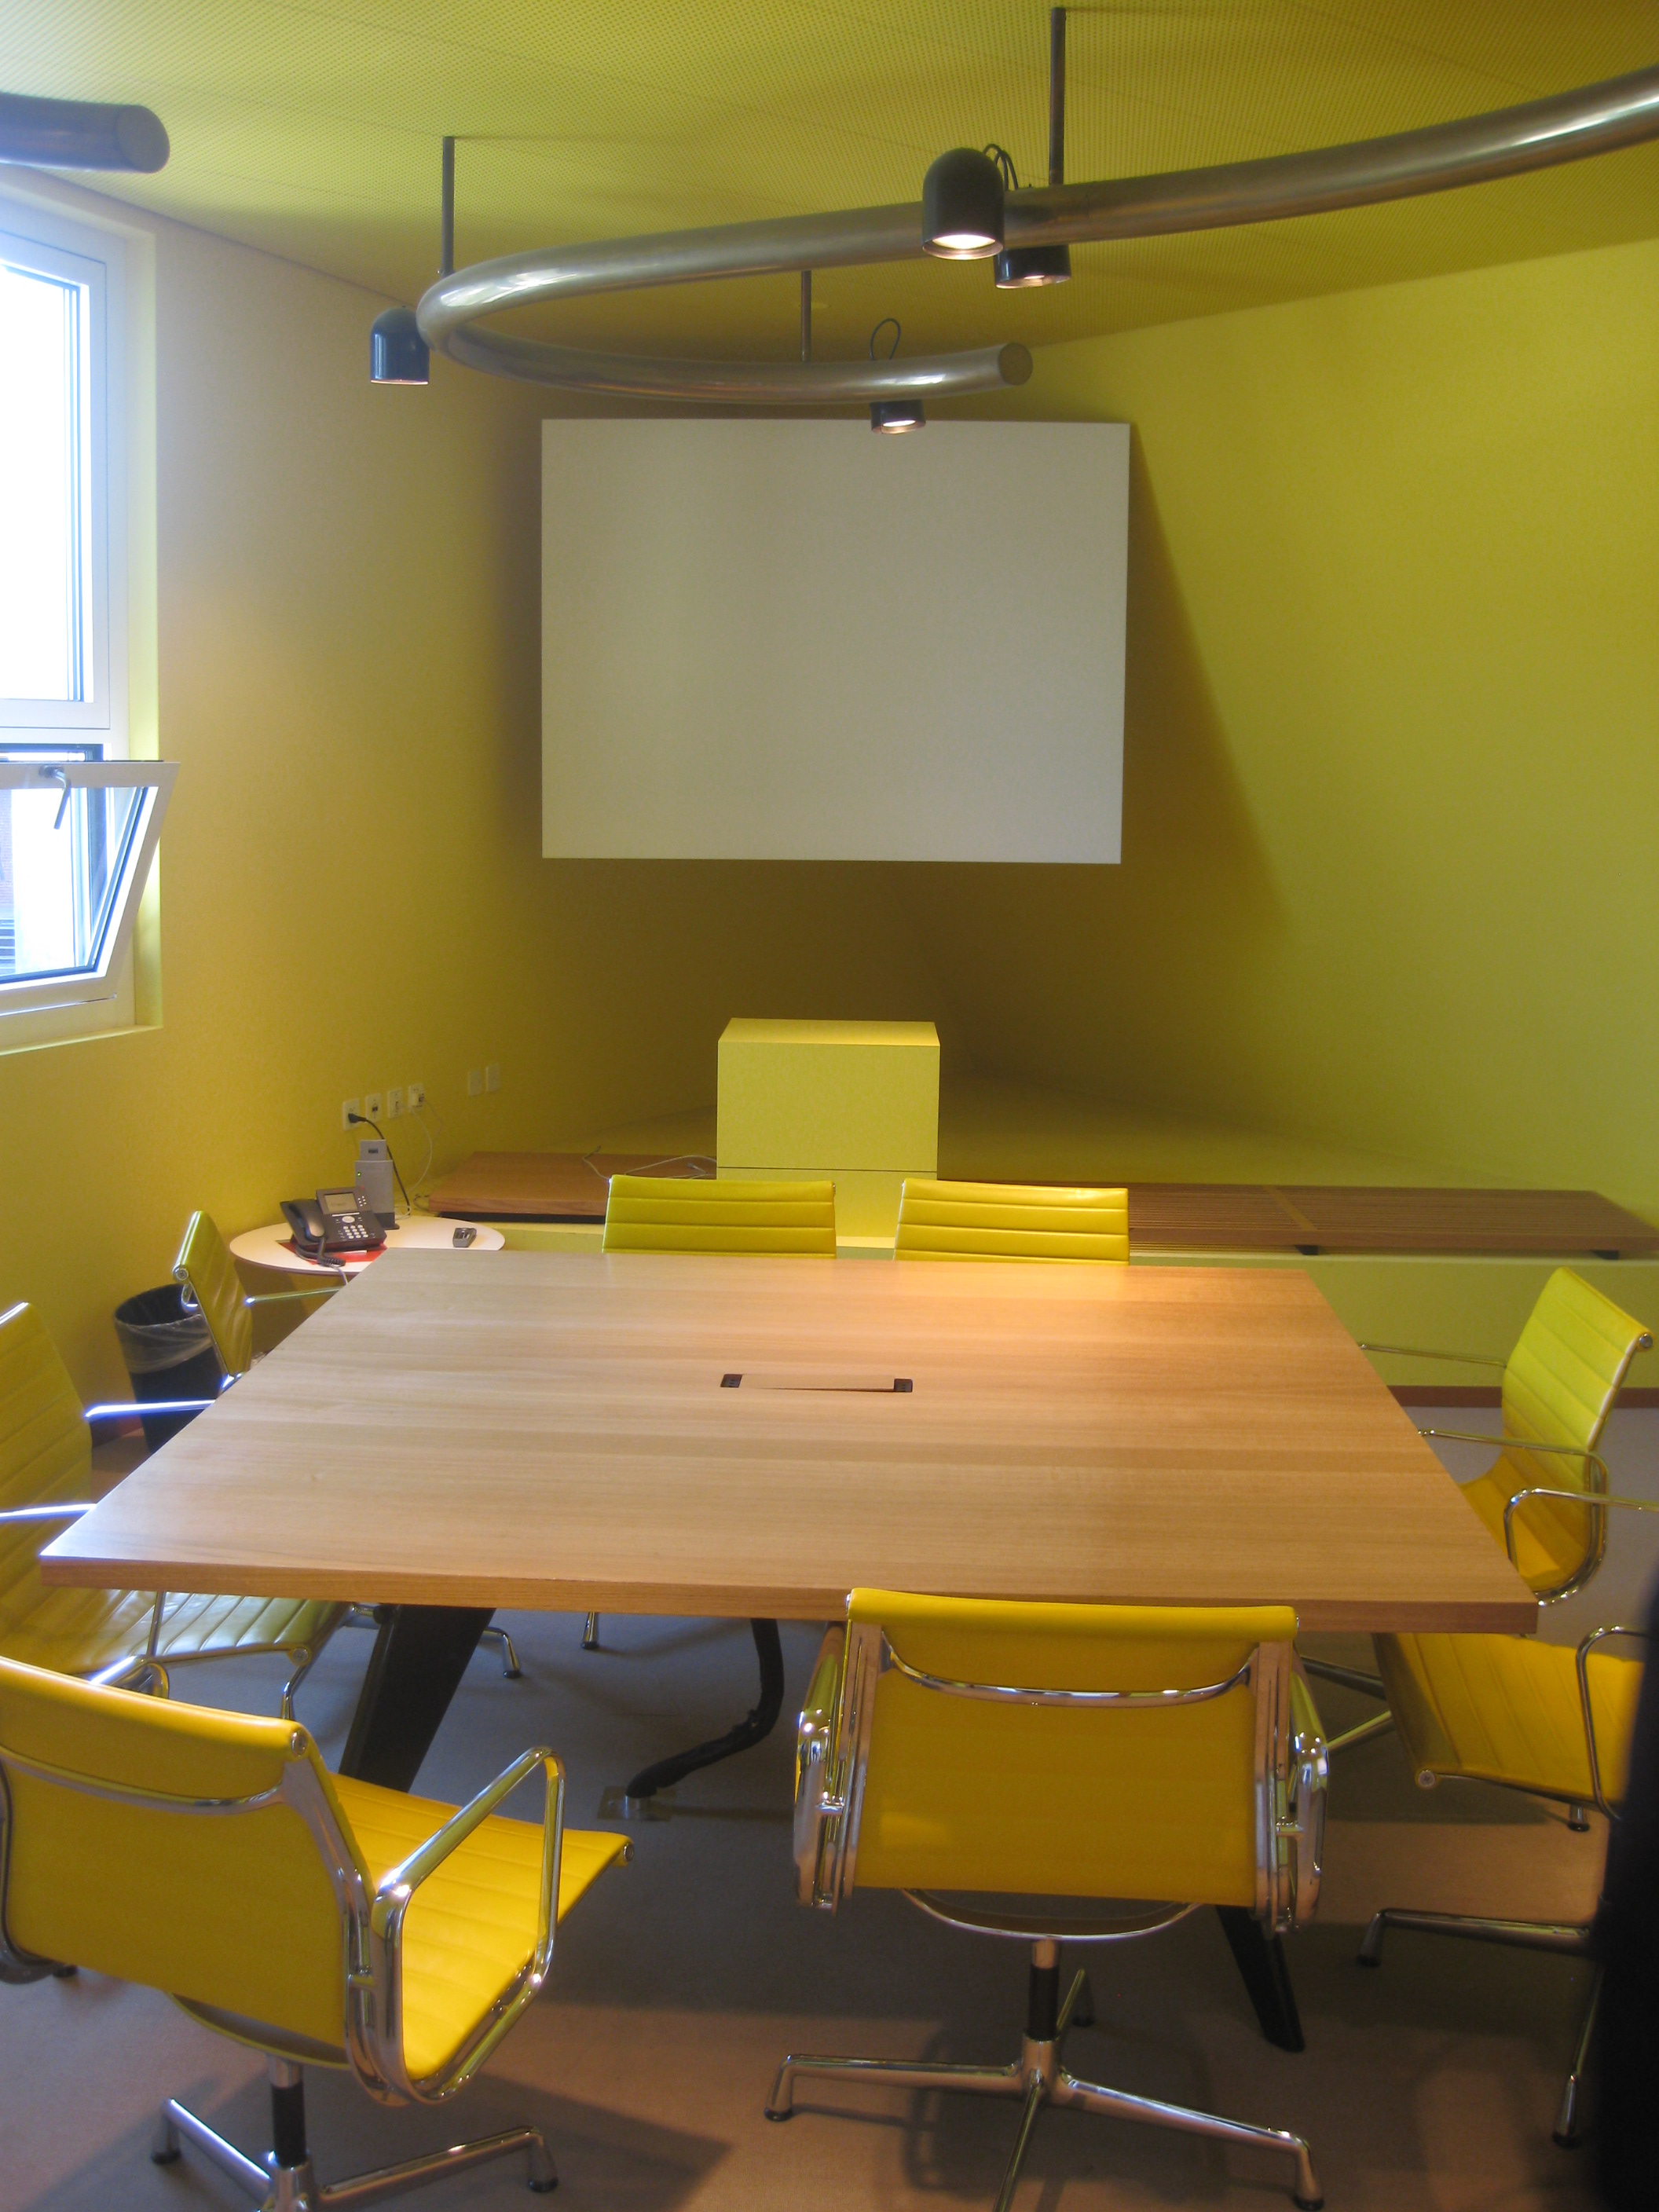 The yellow room at vitra hq in basel with ea 108 from charles and ray